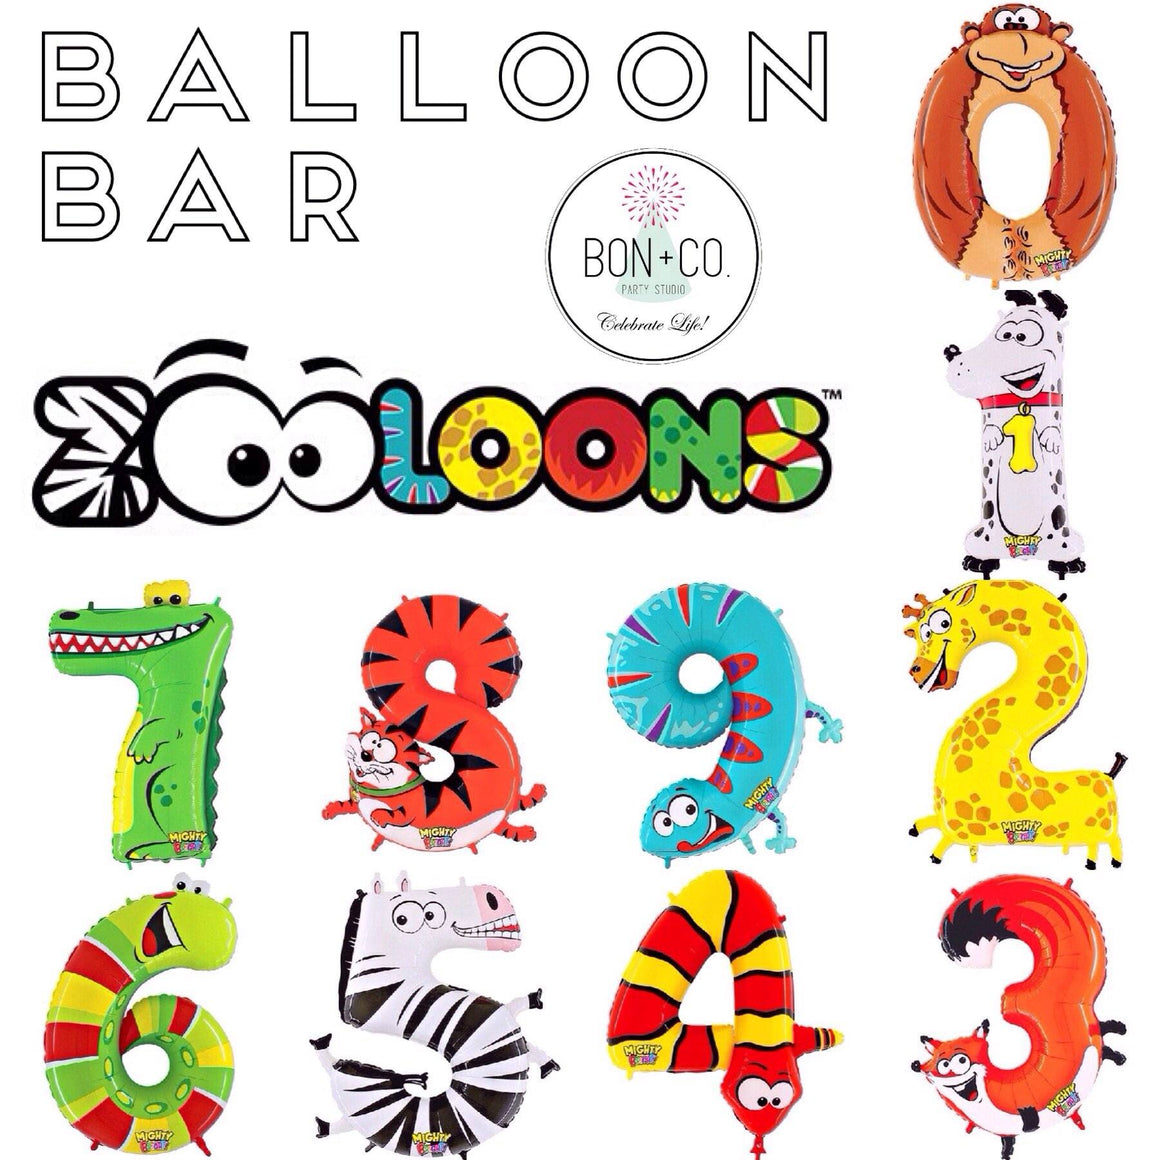 "BALLOON BAR - 40"" ZOOLOONS, Balloons, BETALLIC - Bon + Co. Party Studio"